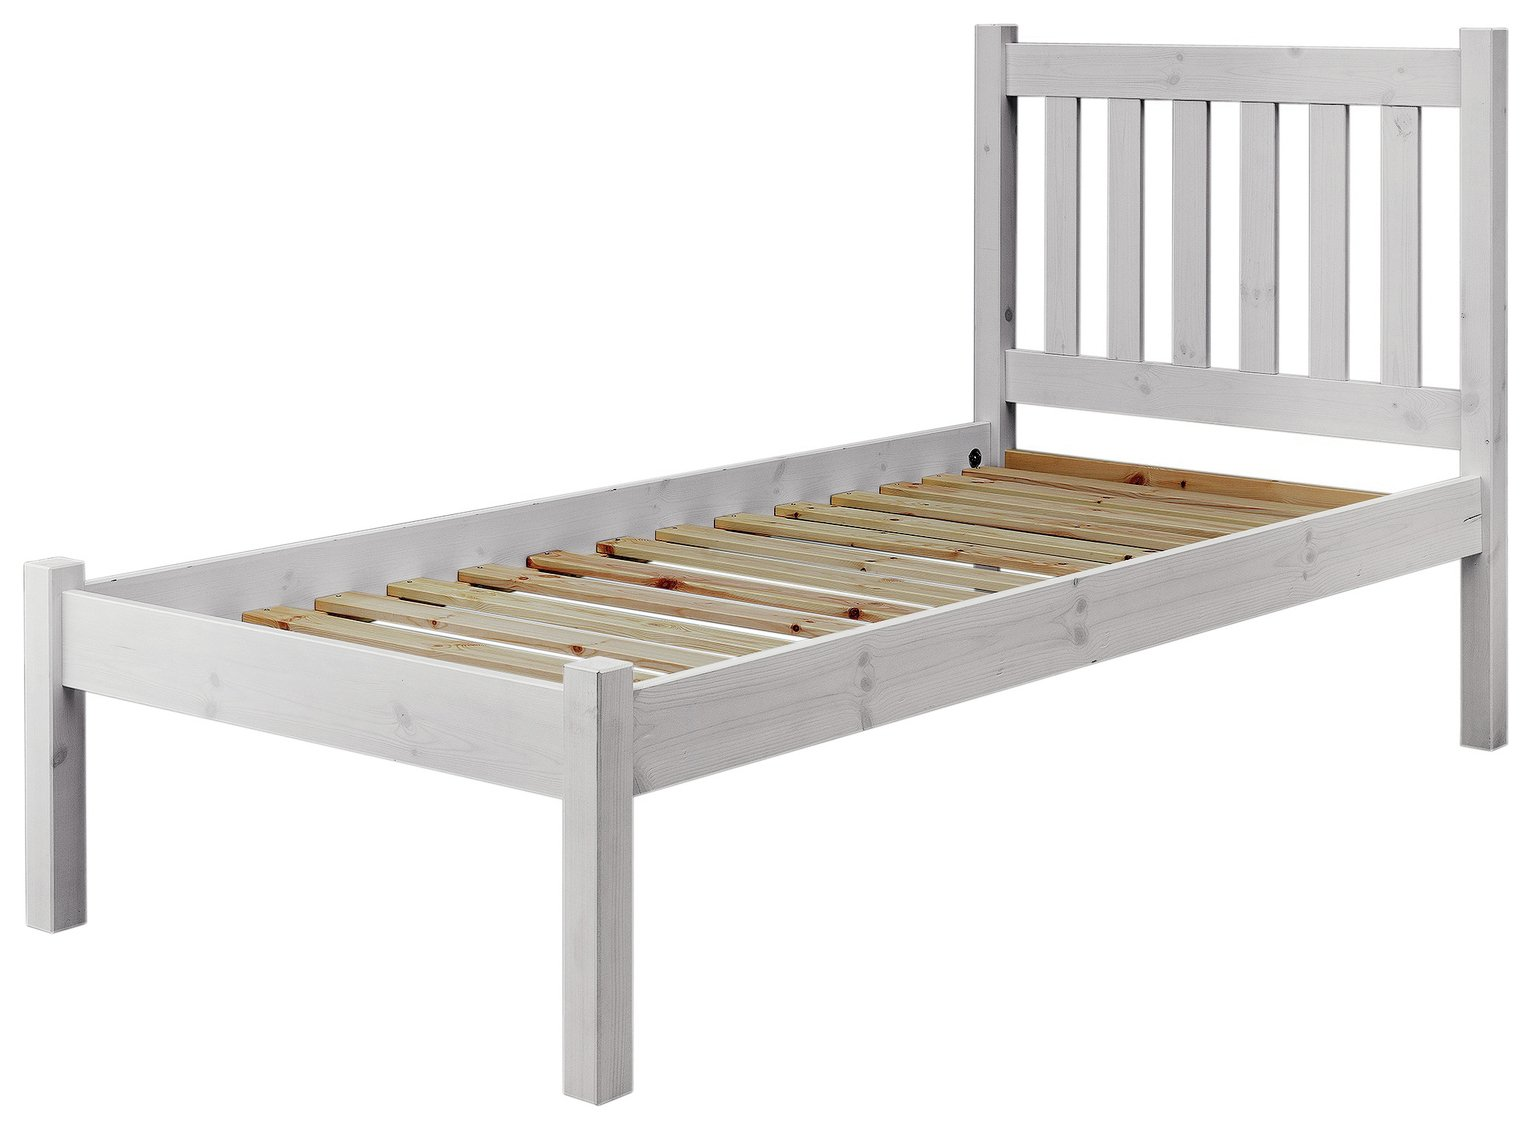 Image of Argos Home Silbury Single Bed Frame - Whitewash